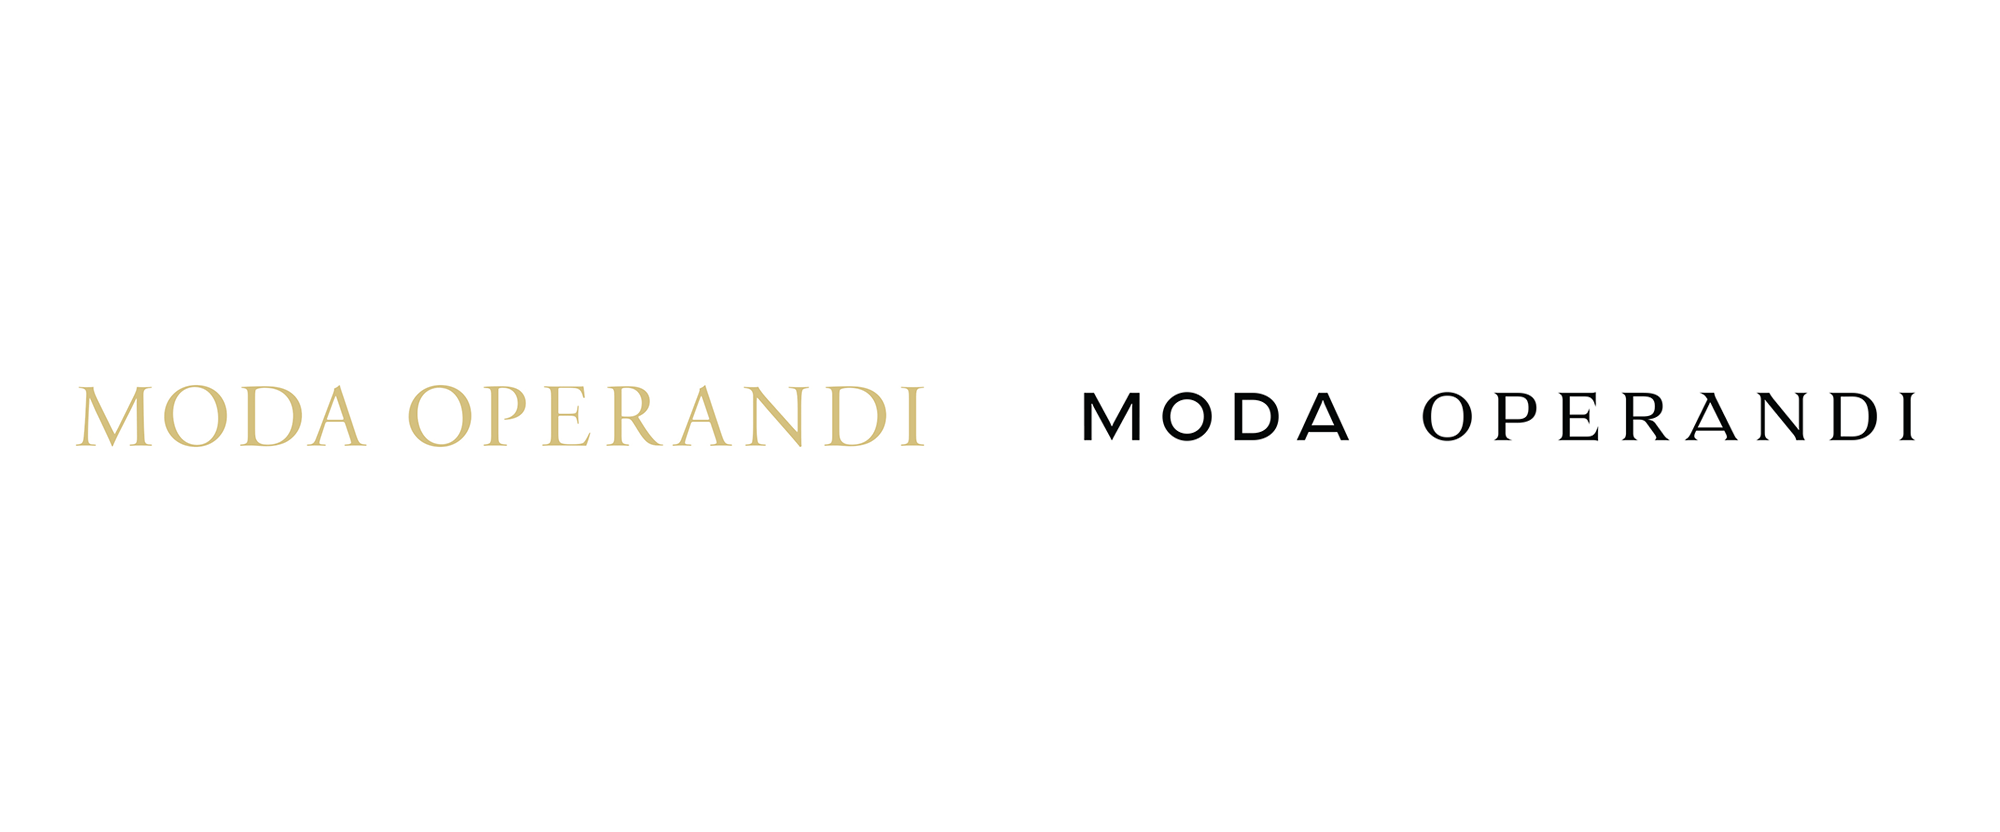 New Logo and Identity for Moda Operandi by Lotta Nieminen